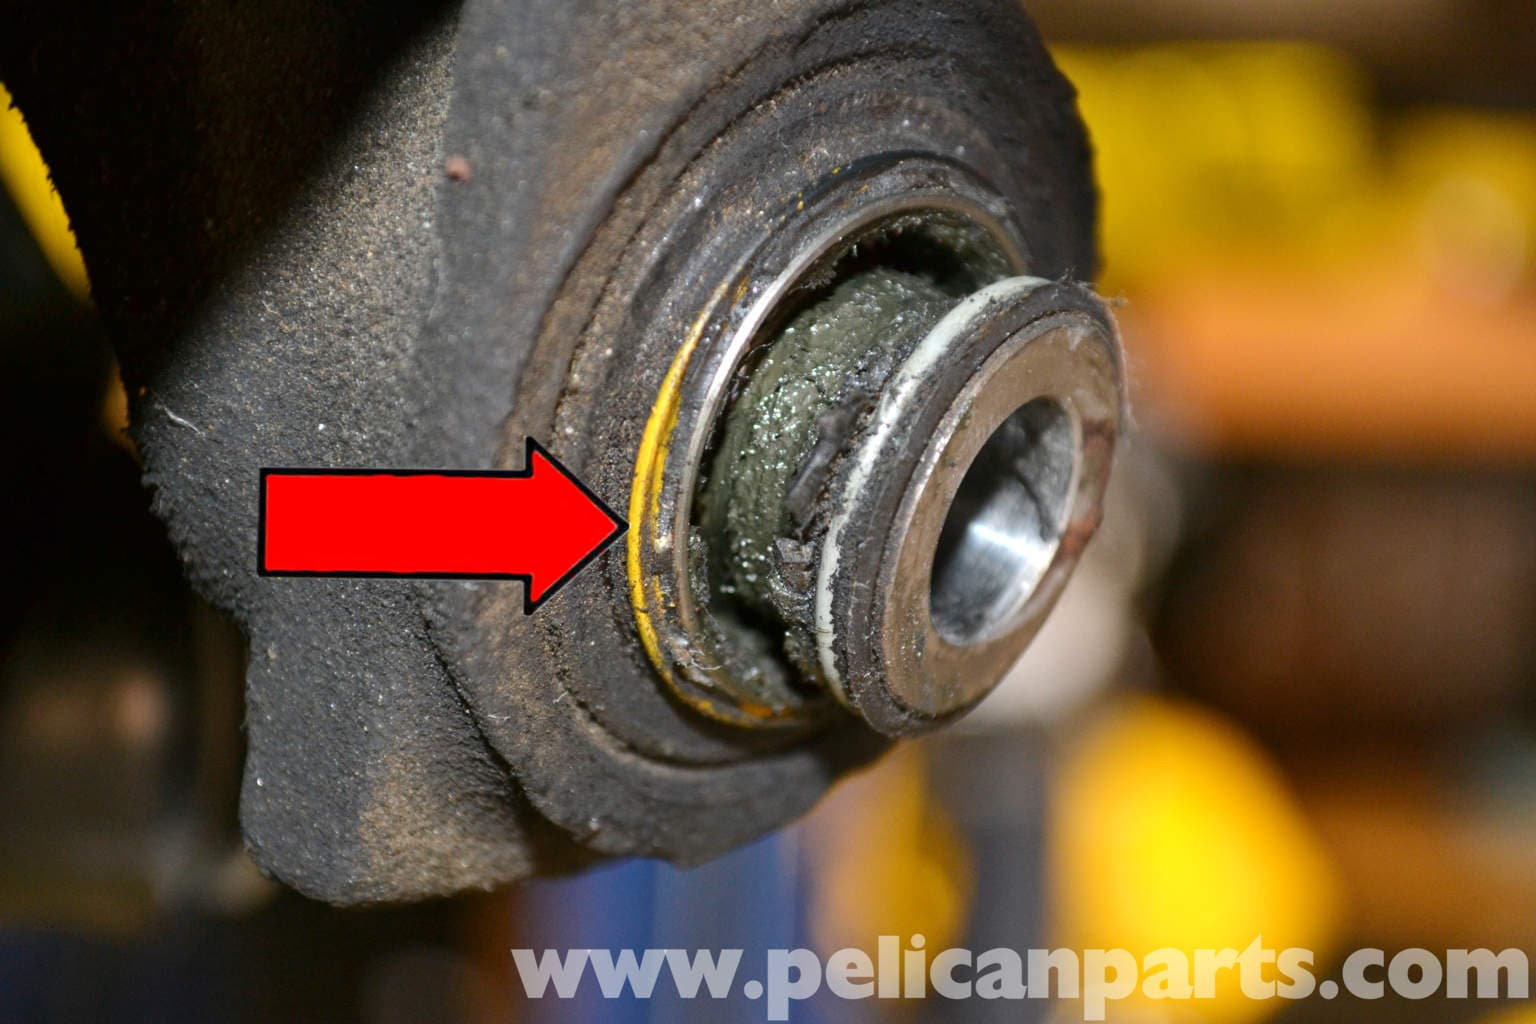 Mercedes Benz W124 Rear Control Arm Bushing Replacement